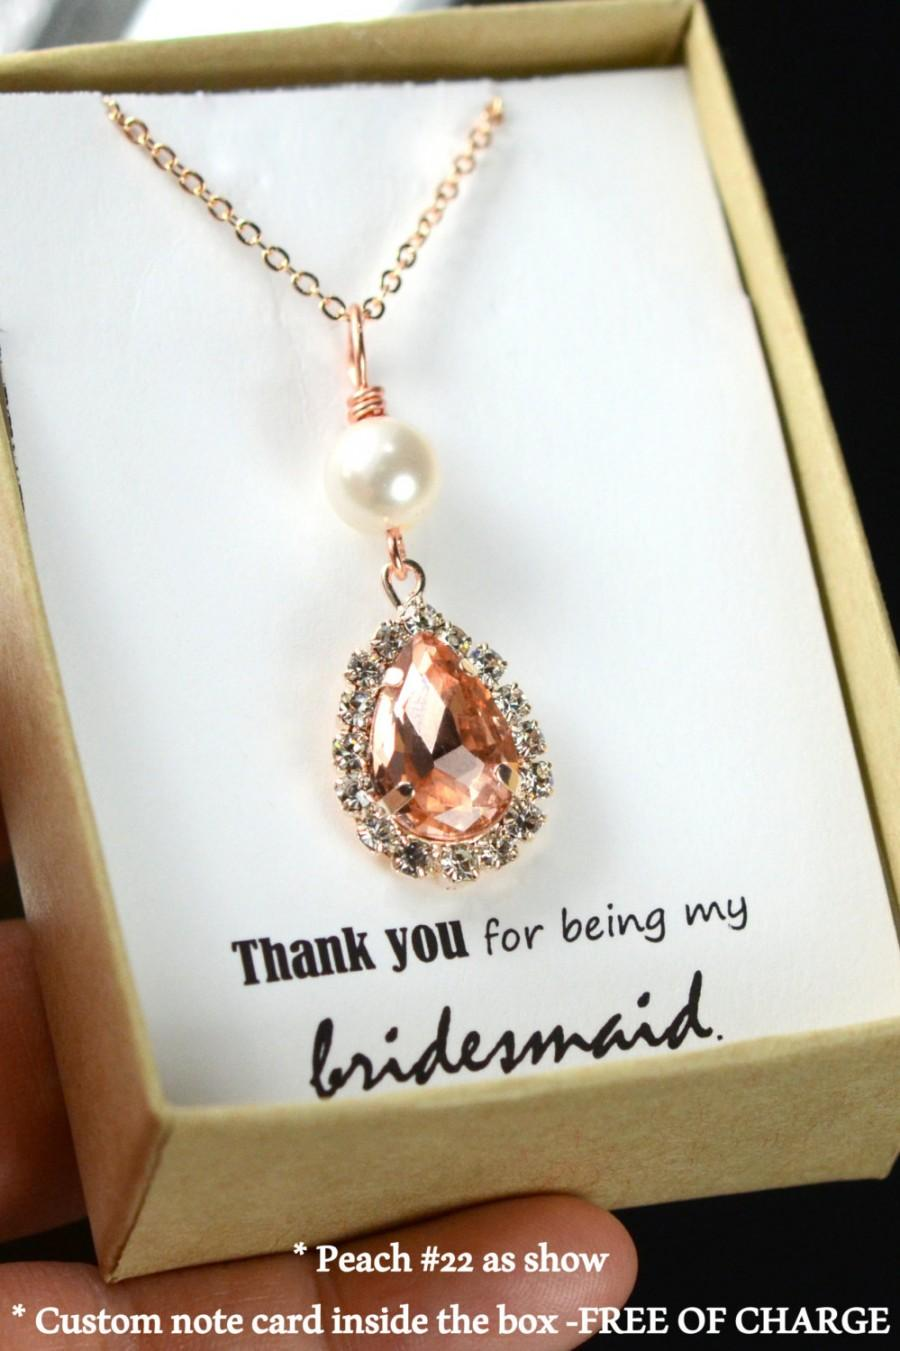 Rose gold necklace soft pink necklace blush bridal teardrop necklace rose gold necklace soft pink necklace blush bridal teardrop necklace peach crystal vintage rose pendant bridesmaid gift wedding jewelry audiocablefo